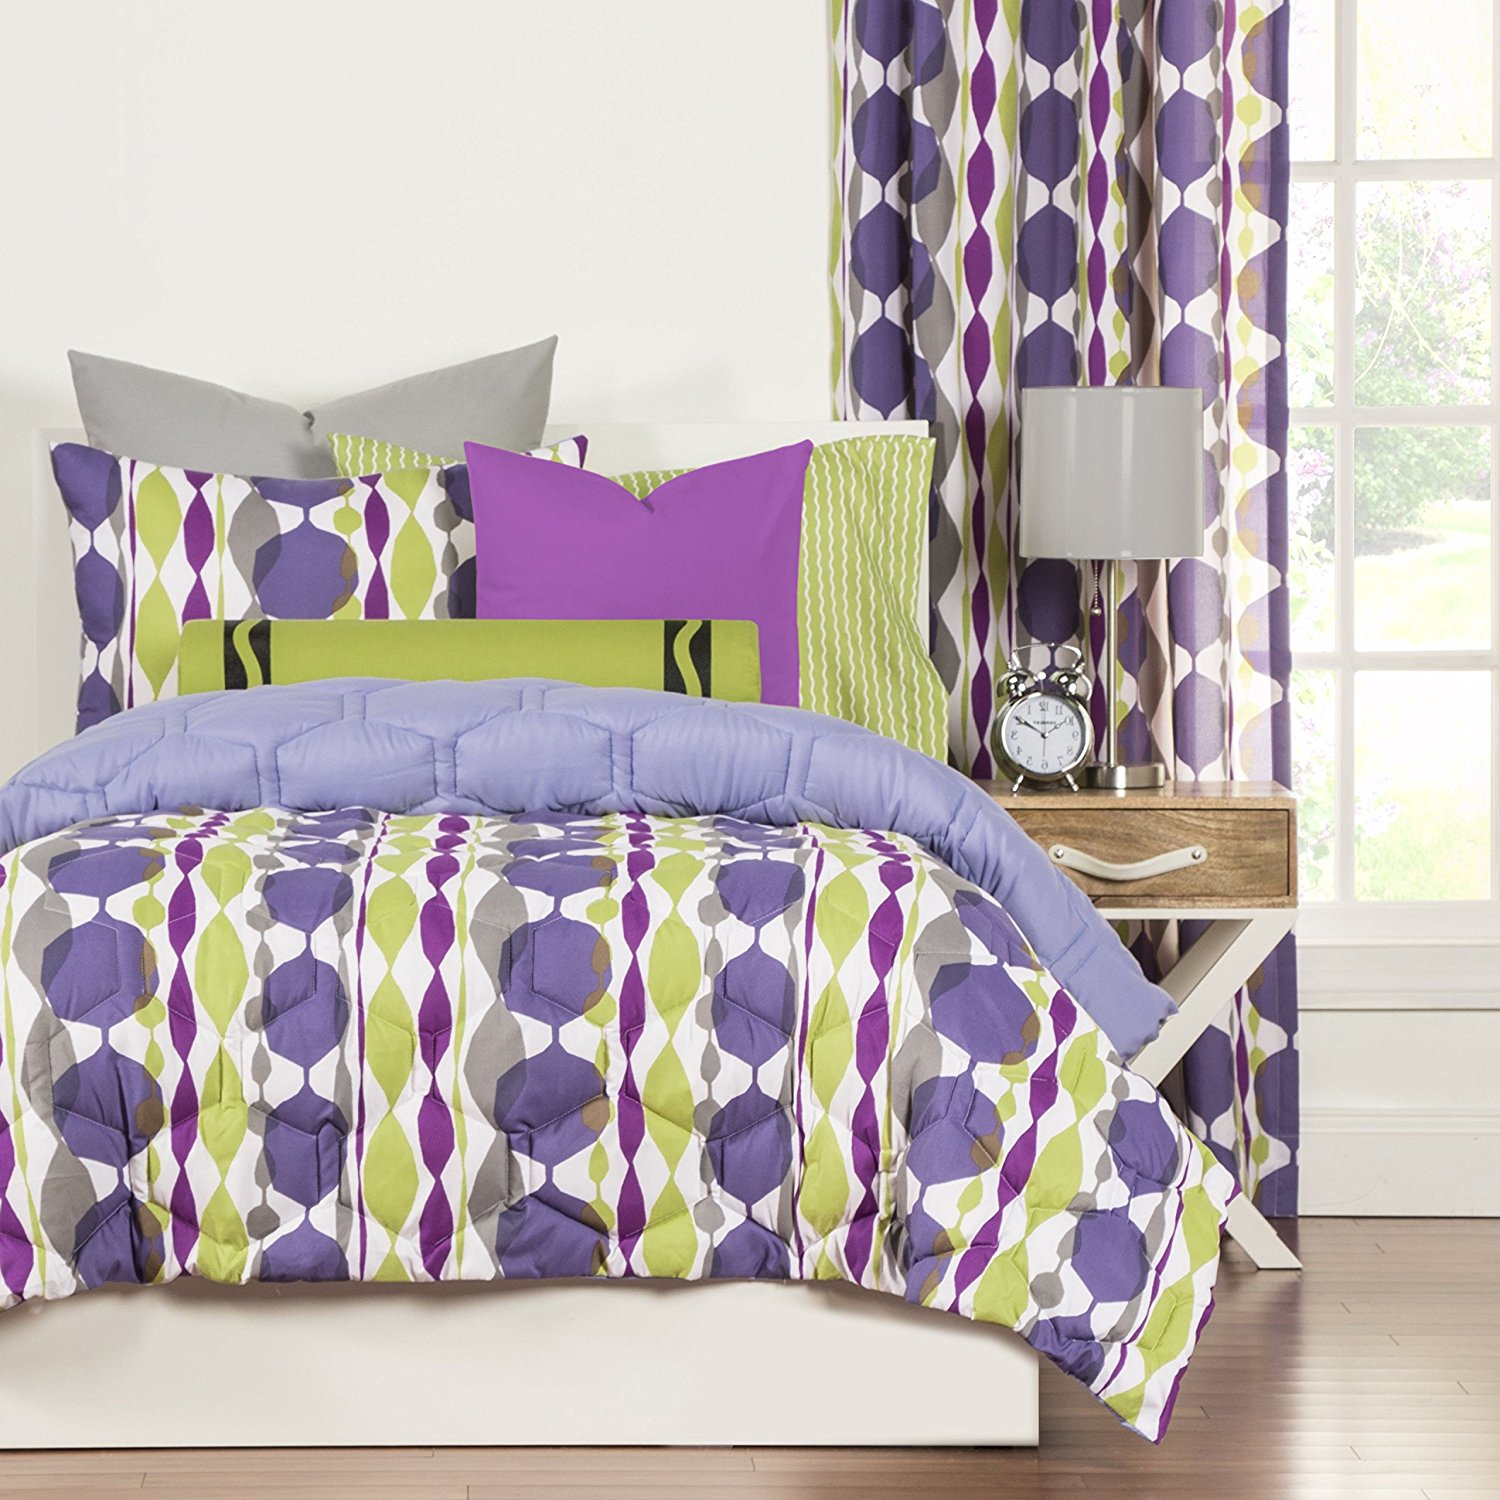 Buy Ht 2 Piece Multi Color Geometric Comforter Set Twin Green Grey Purple White Graphic Medallion Stripe Jeweled Teen Themed Reversible Kids Bedding For Bedroom Modern Casual Colorful Microfiber In Cheap Price